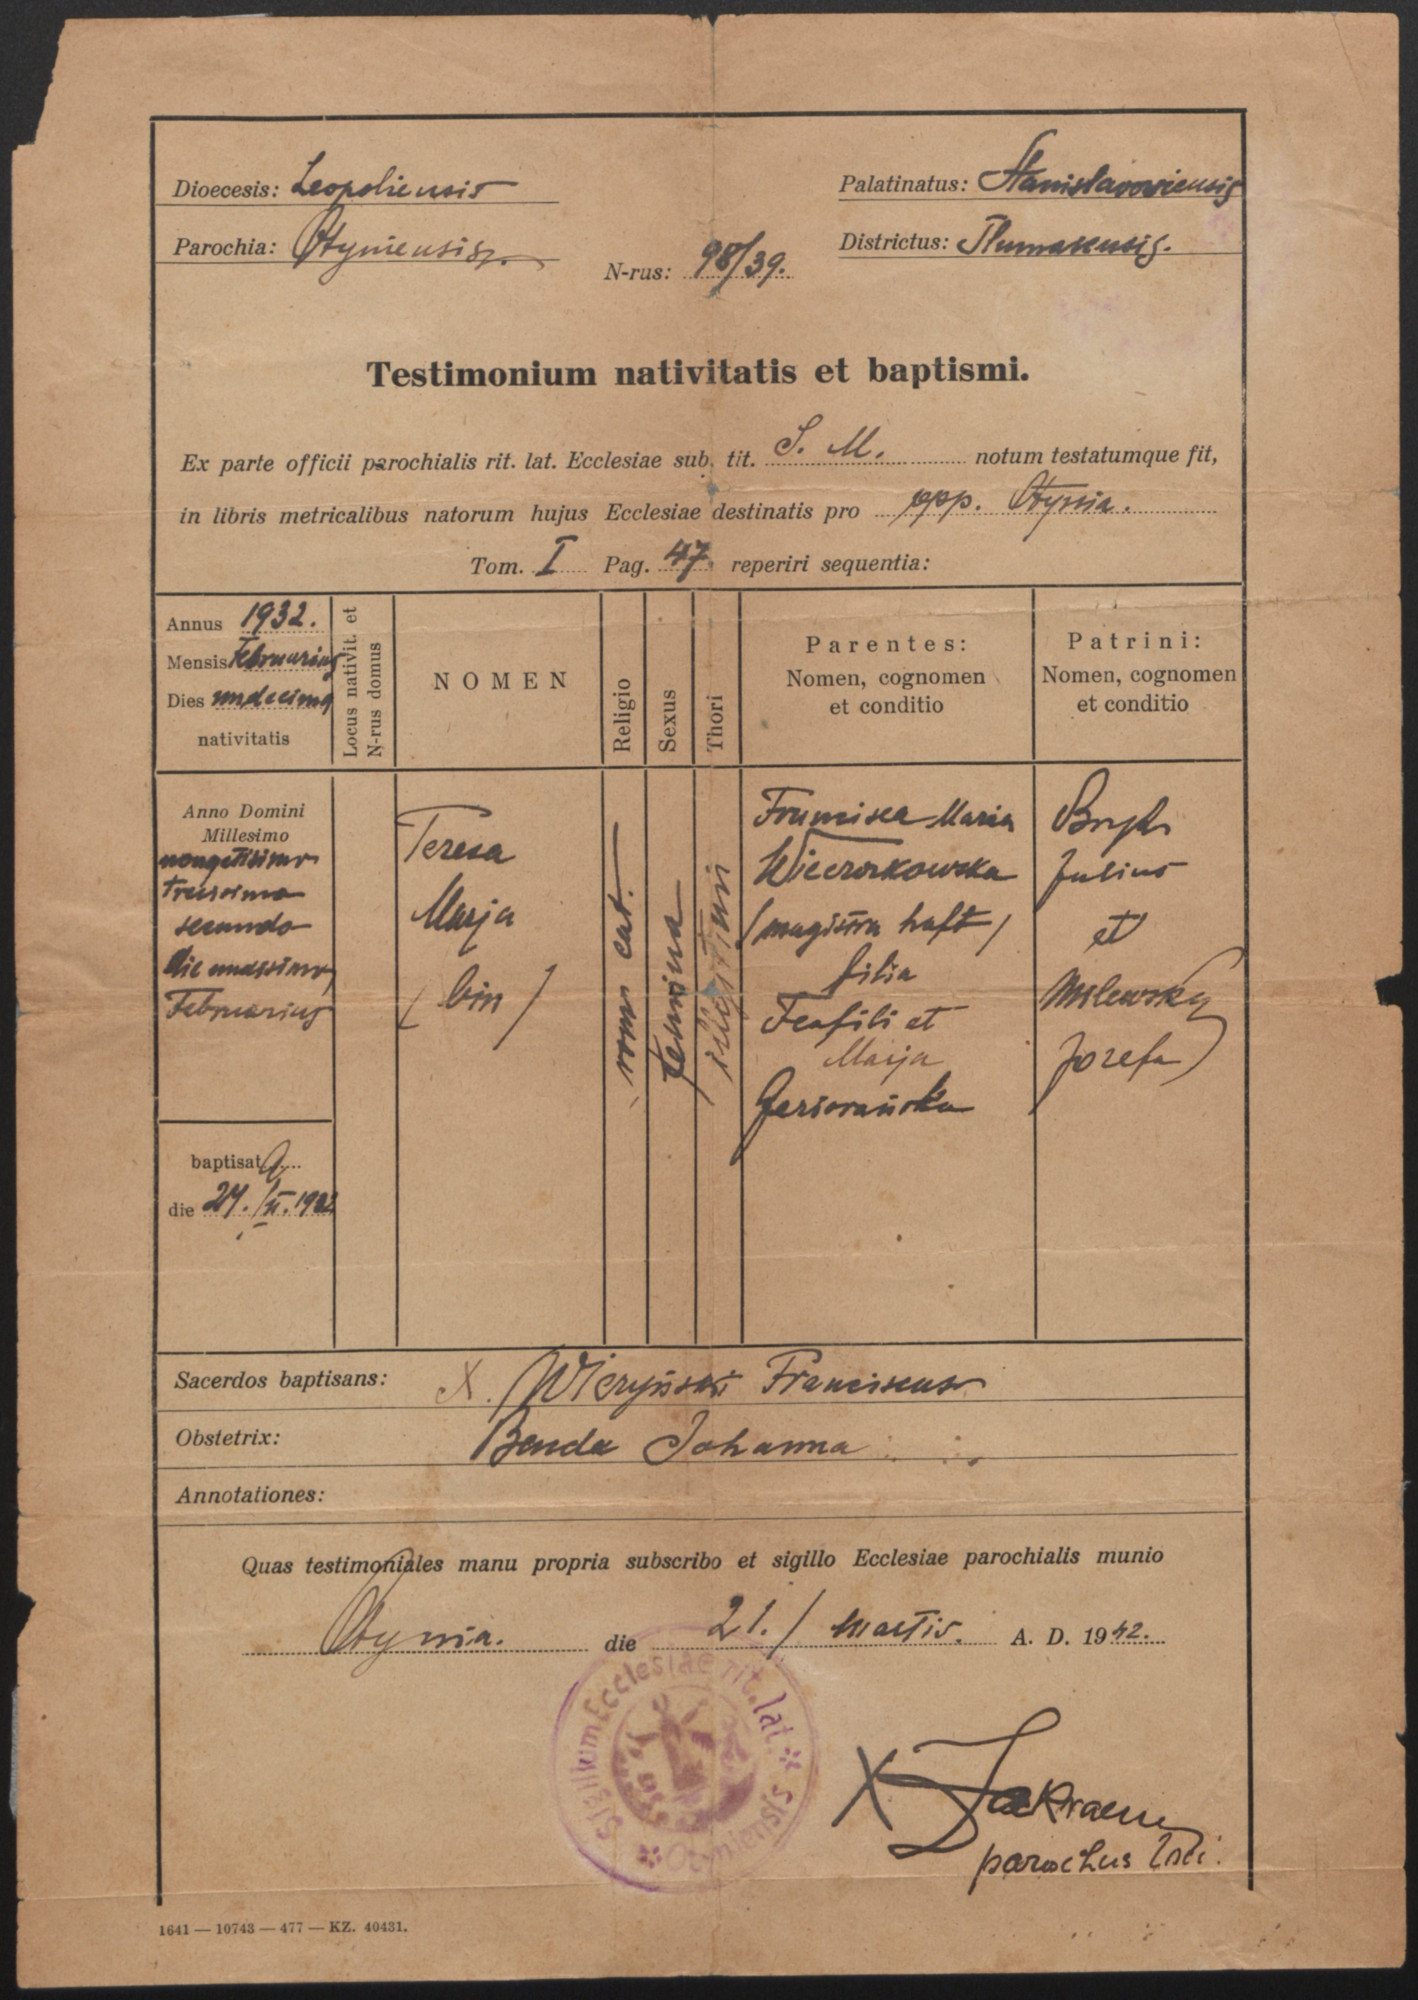 False birth certificate issued in the name of Teresa Marja Wieczorkowska, that was used by Dawid Tennenbaum, a Jewish boy who was living in hiding as a girl in the vicinity of Lvov during World War II.